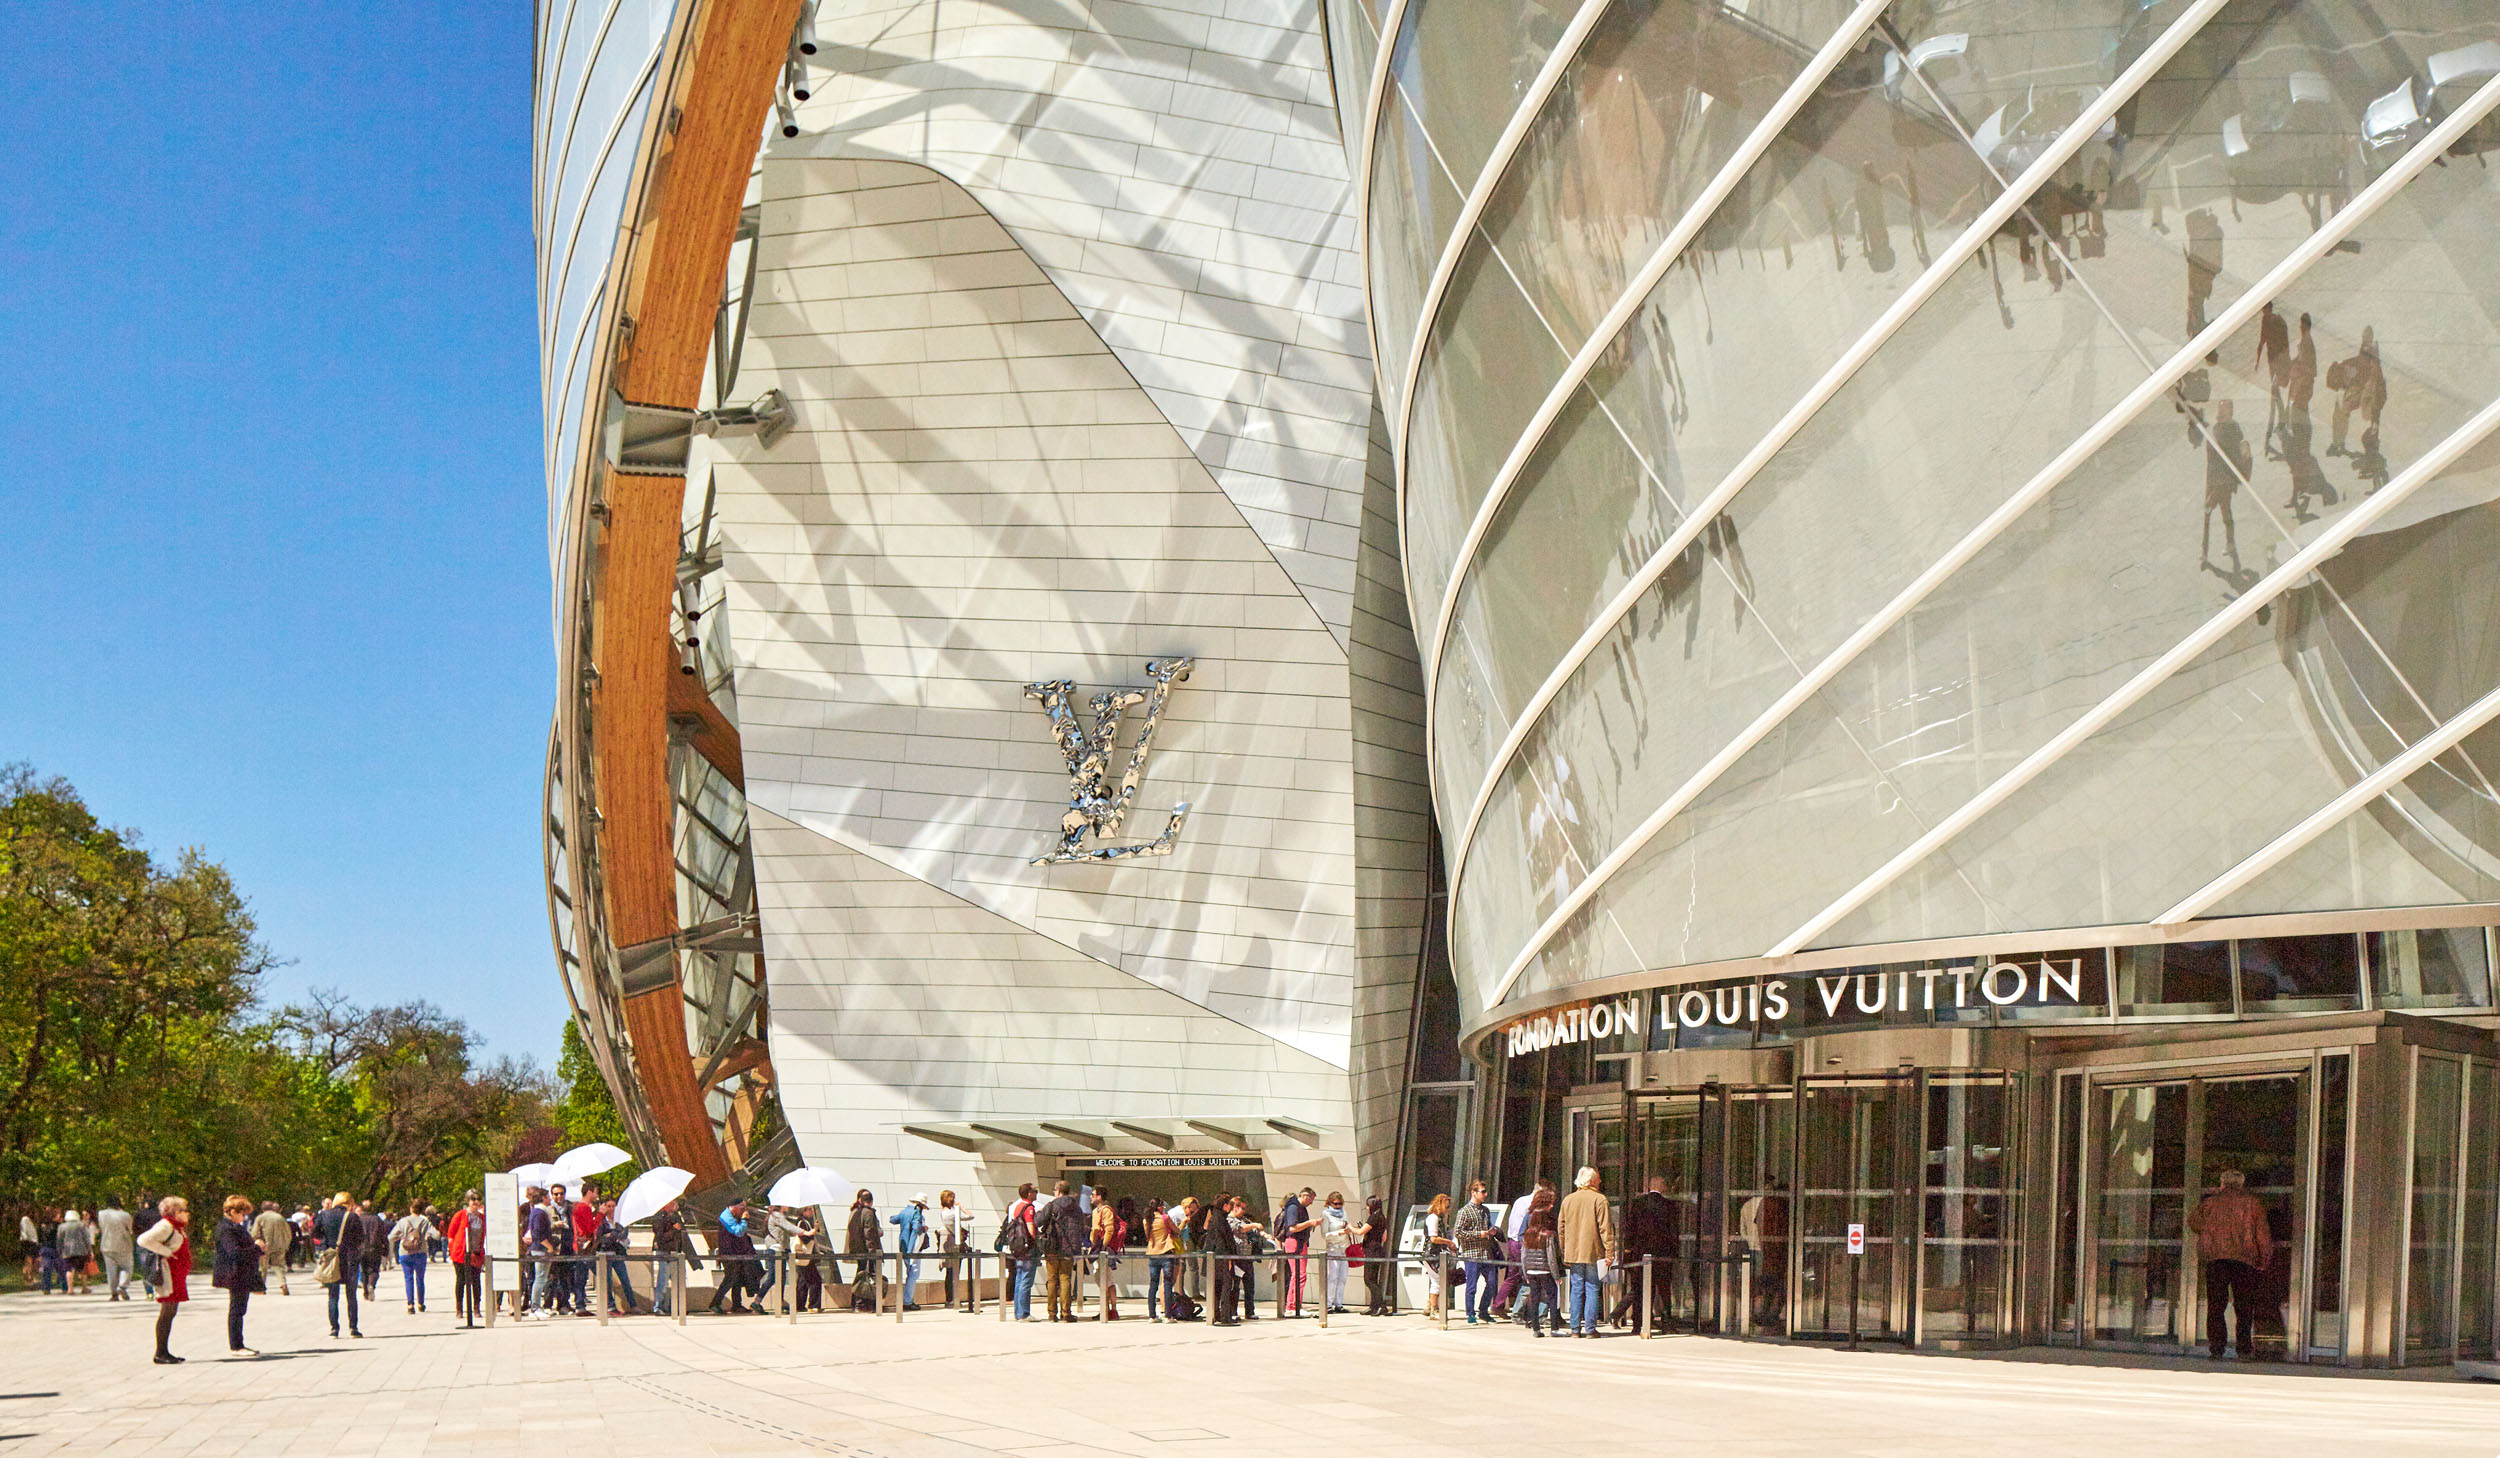 fondation-louis-vuitton-ext-L0A2604